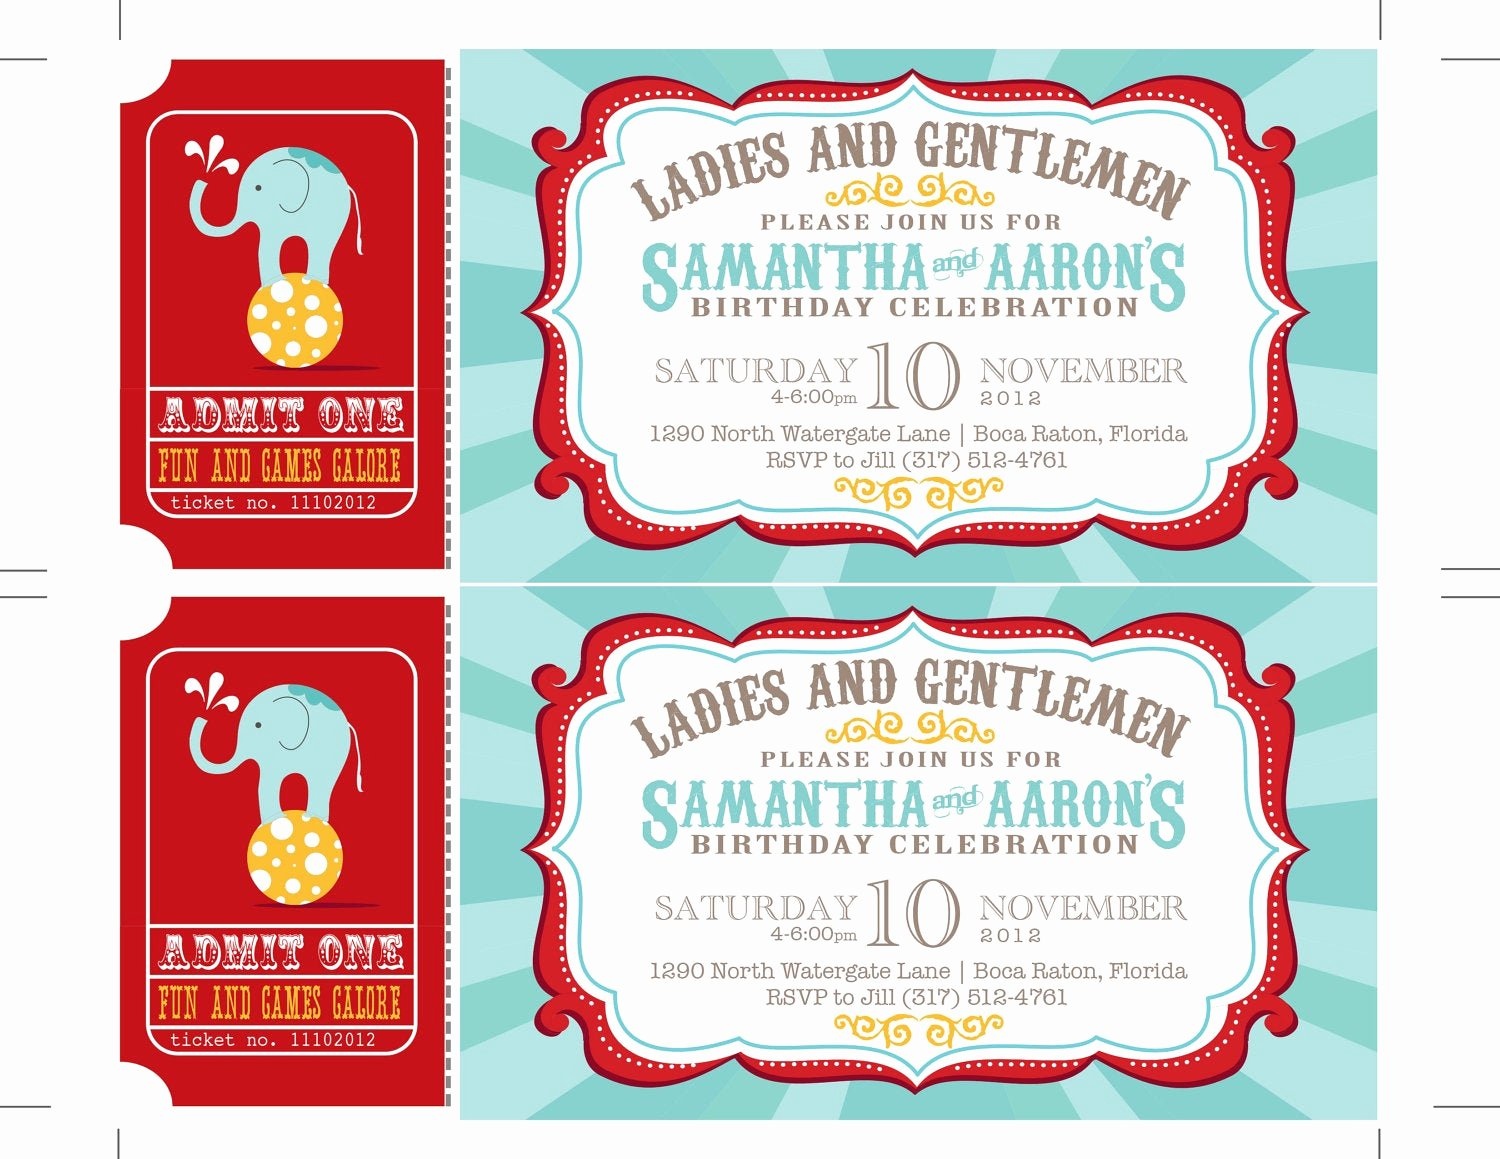 Carnival theme Party Invitations Inspirational Carnival Birthday Party Invitations Circus Baby Shower